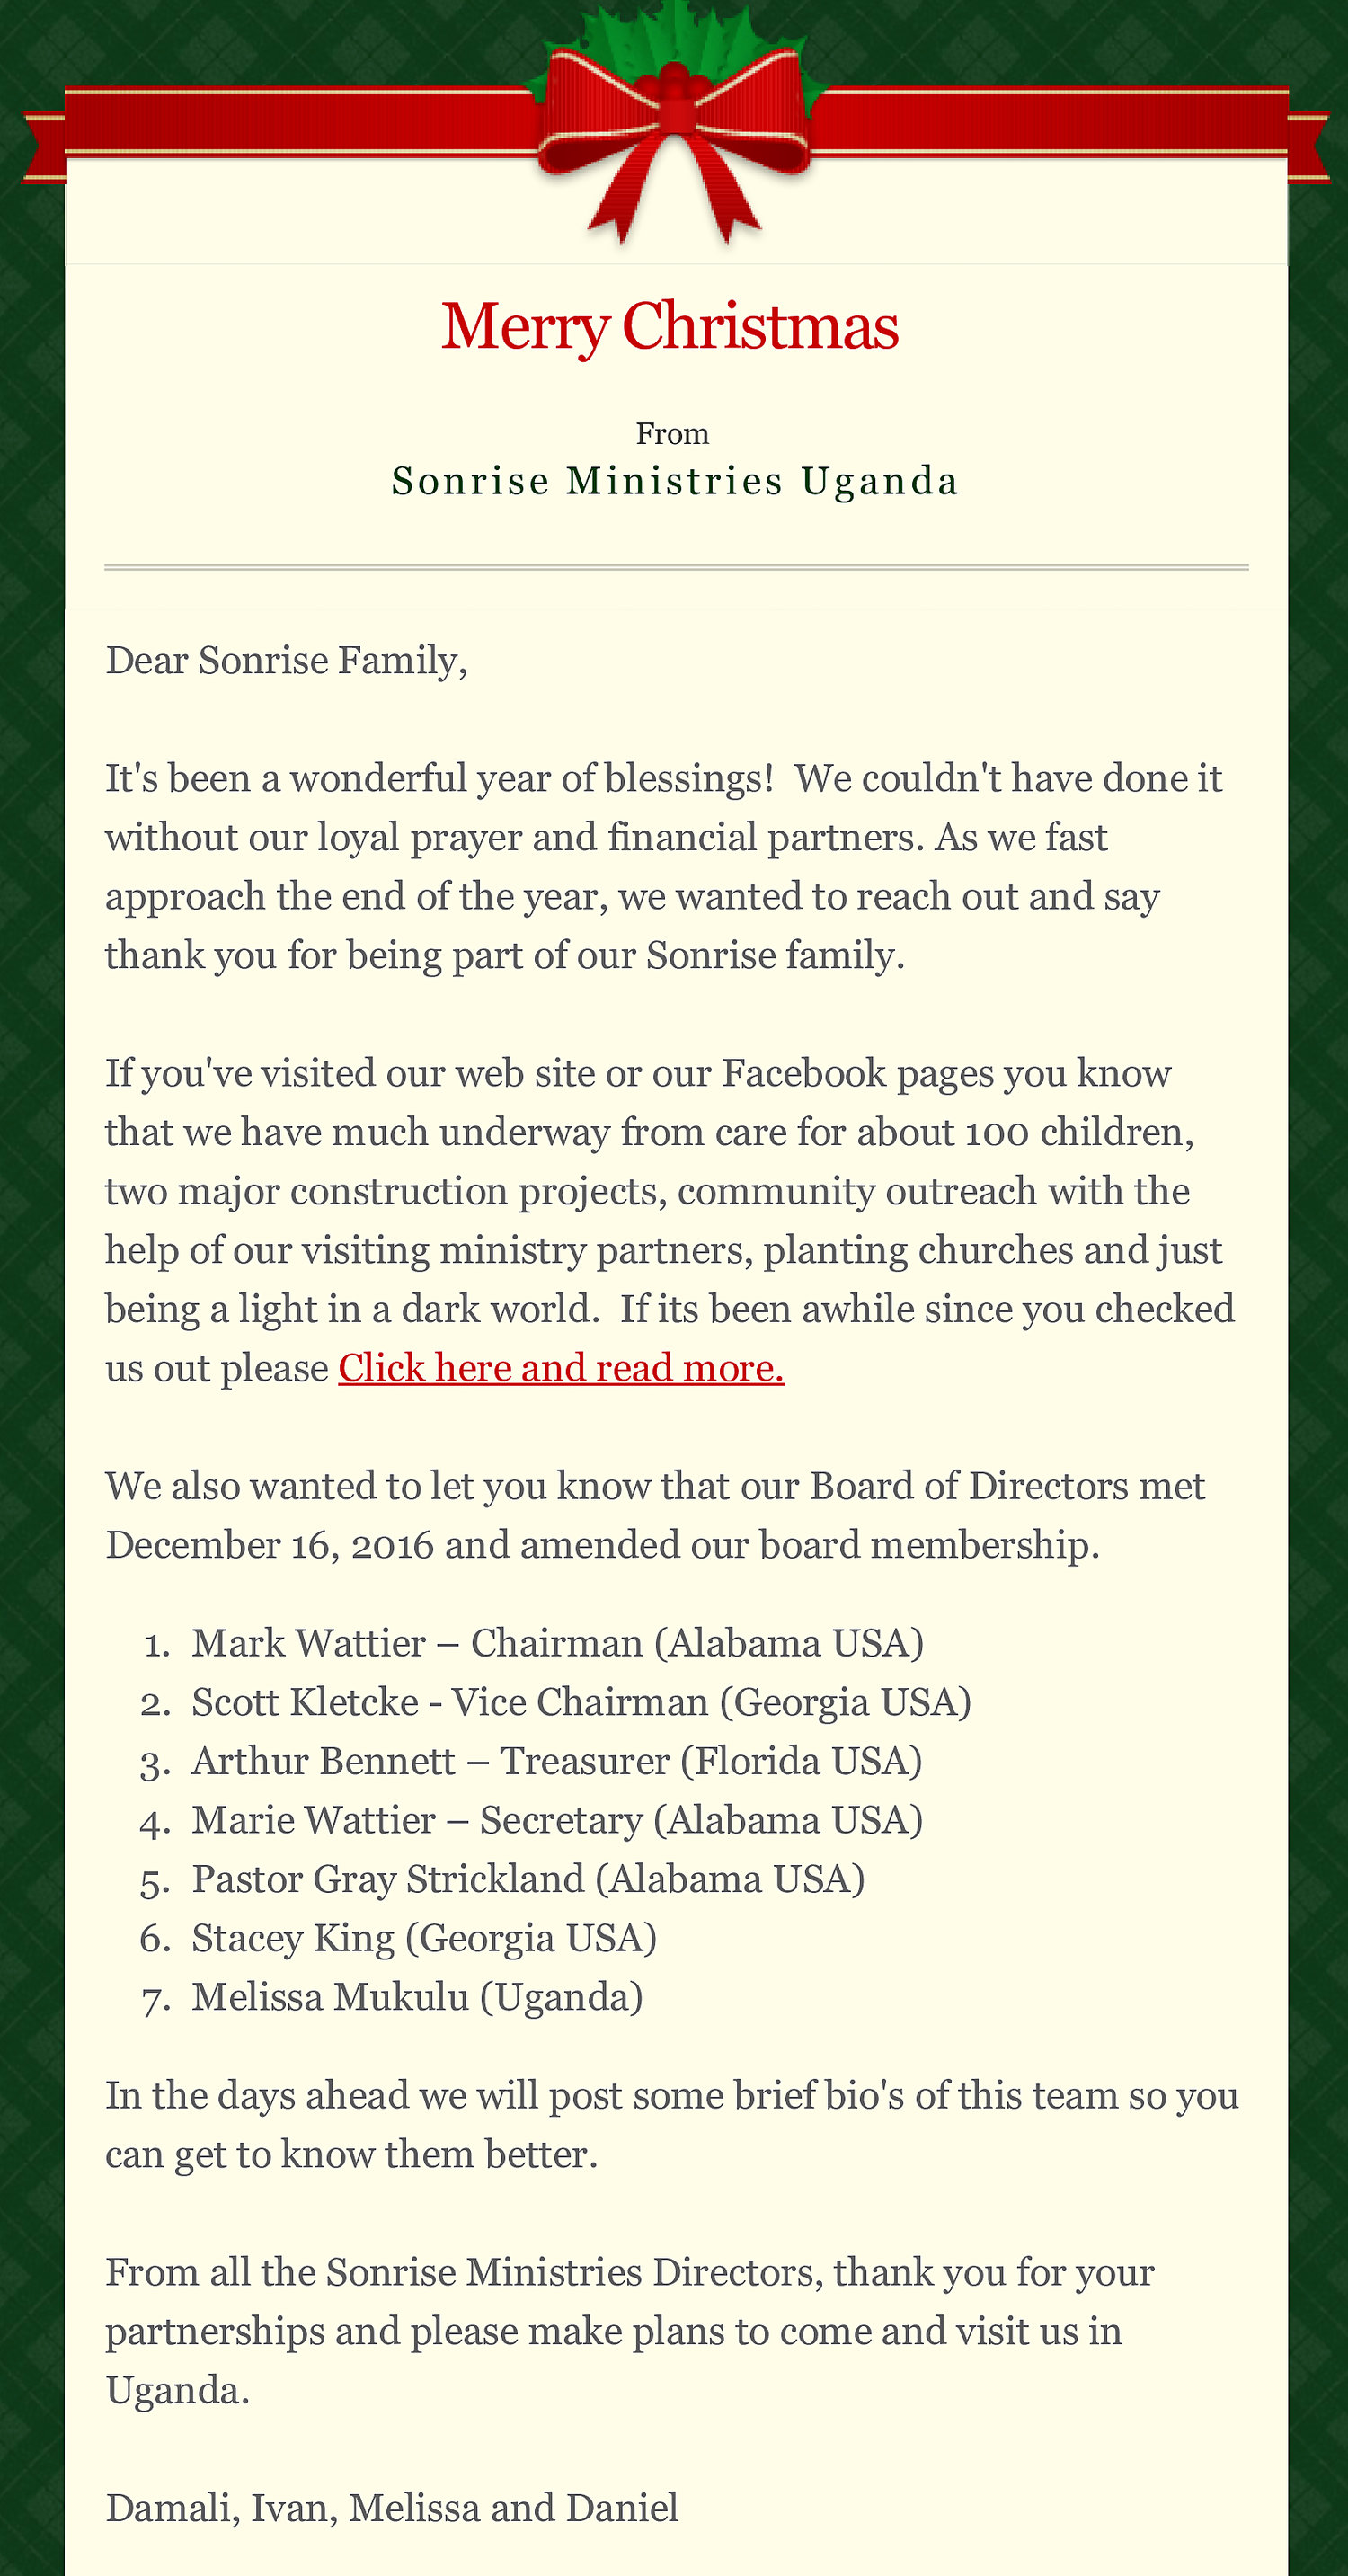 Merry Christmas And New Board Announced Sonrise Ministries Uganda